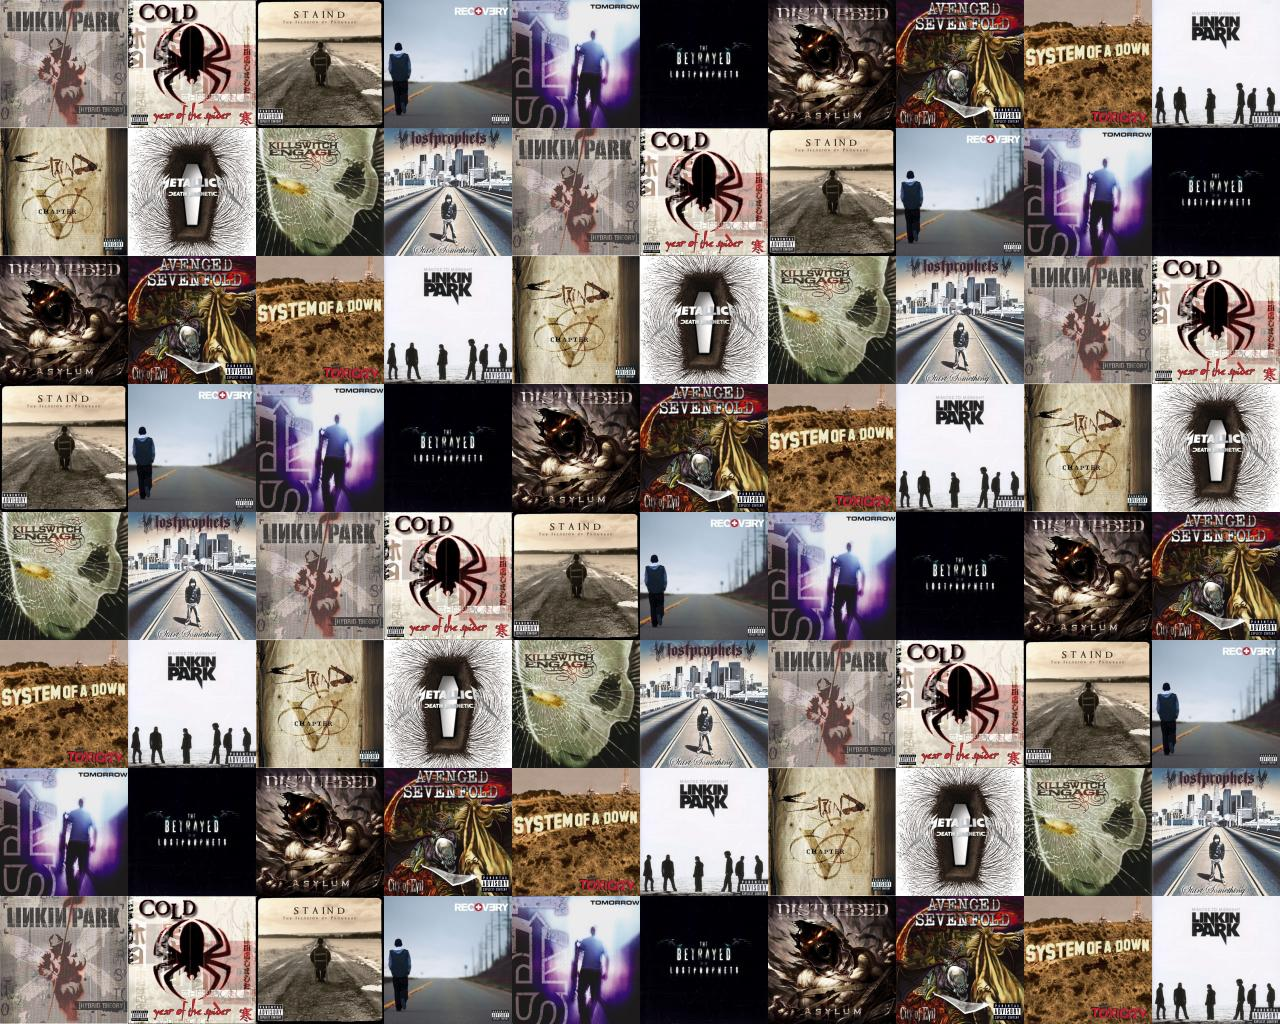 Linkin Park Hybrid Theory Cold Year Spider Staind Wallpaper